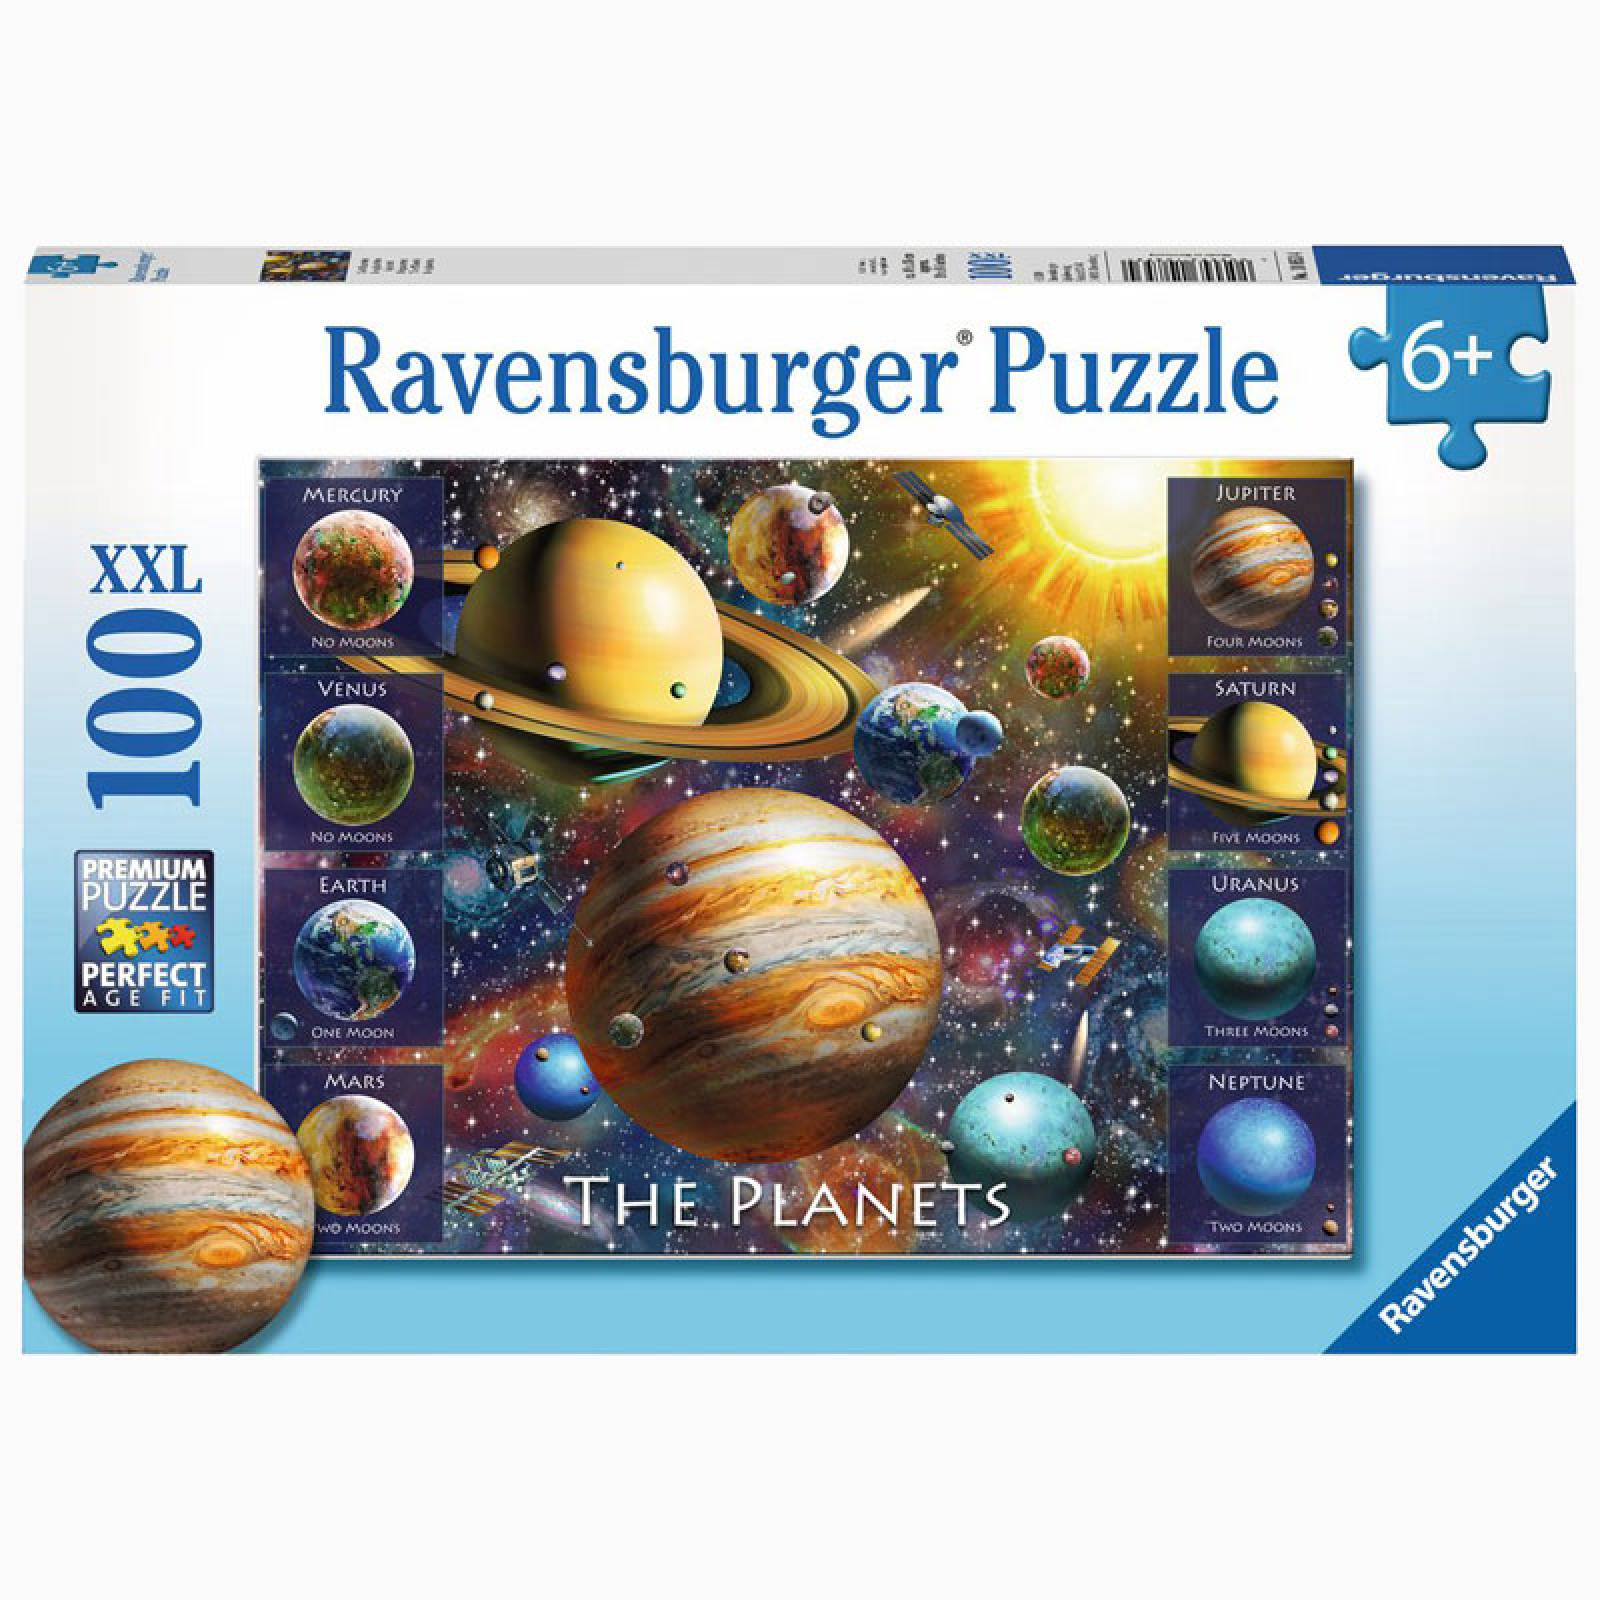 The Planets 100 Piece Puzzle 6+